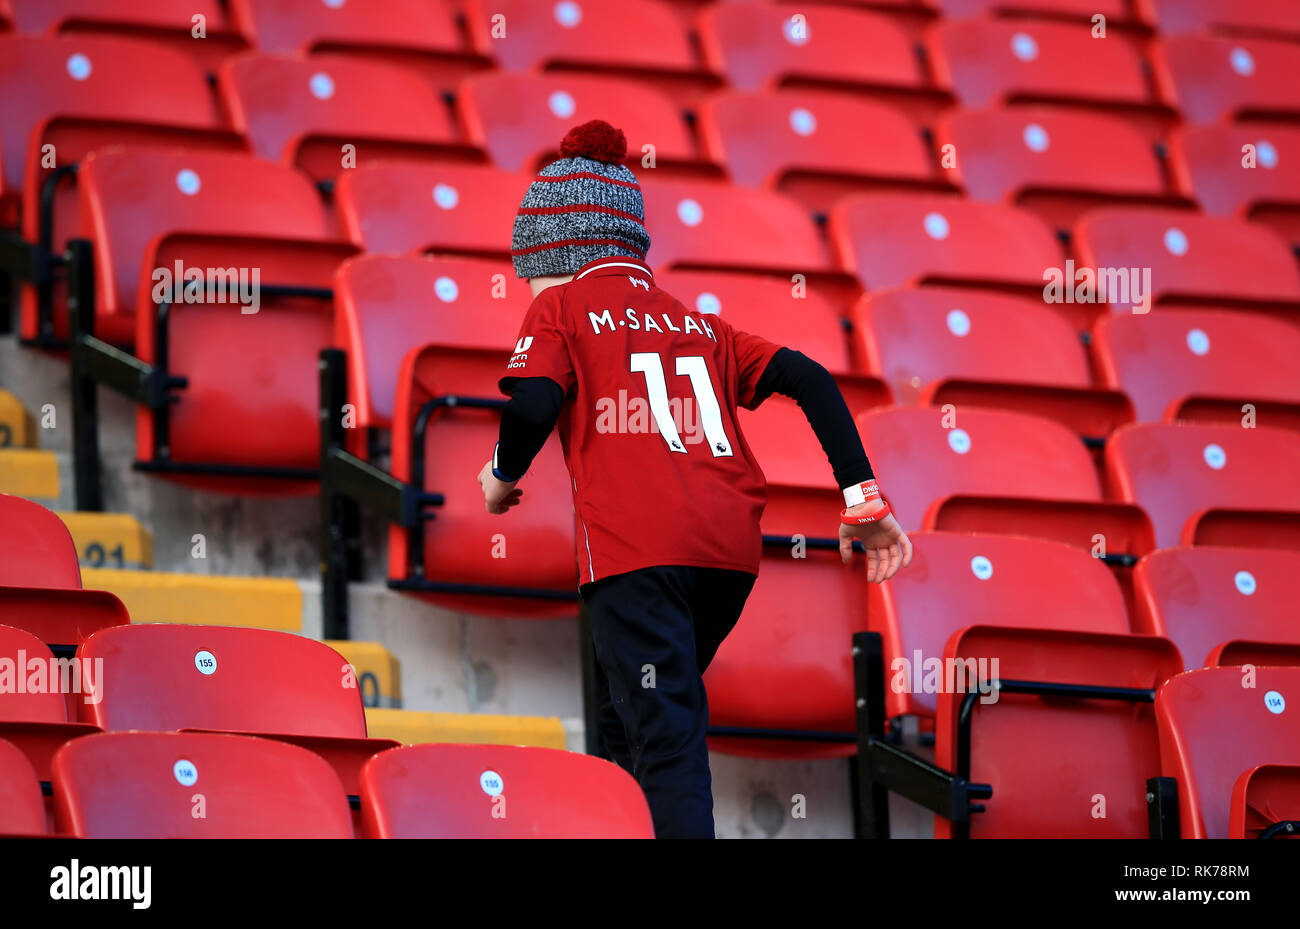 sale retailer cc867 cf9d7 A young Liverpool fan in the stands wearing a Mohamed Salah ...